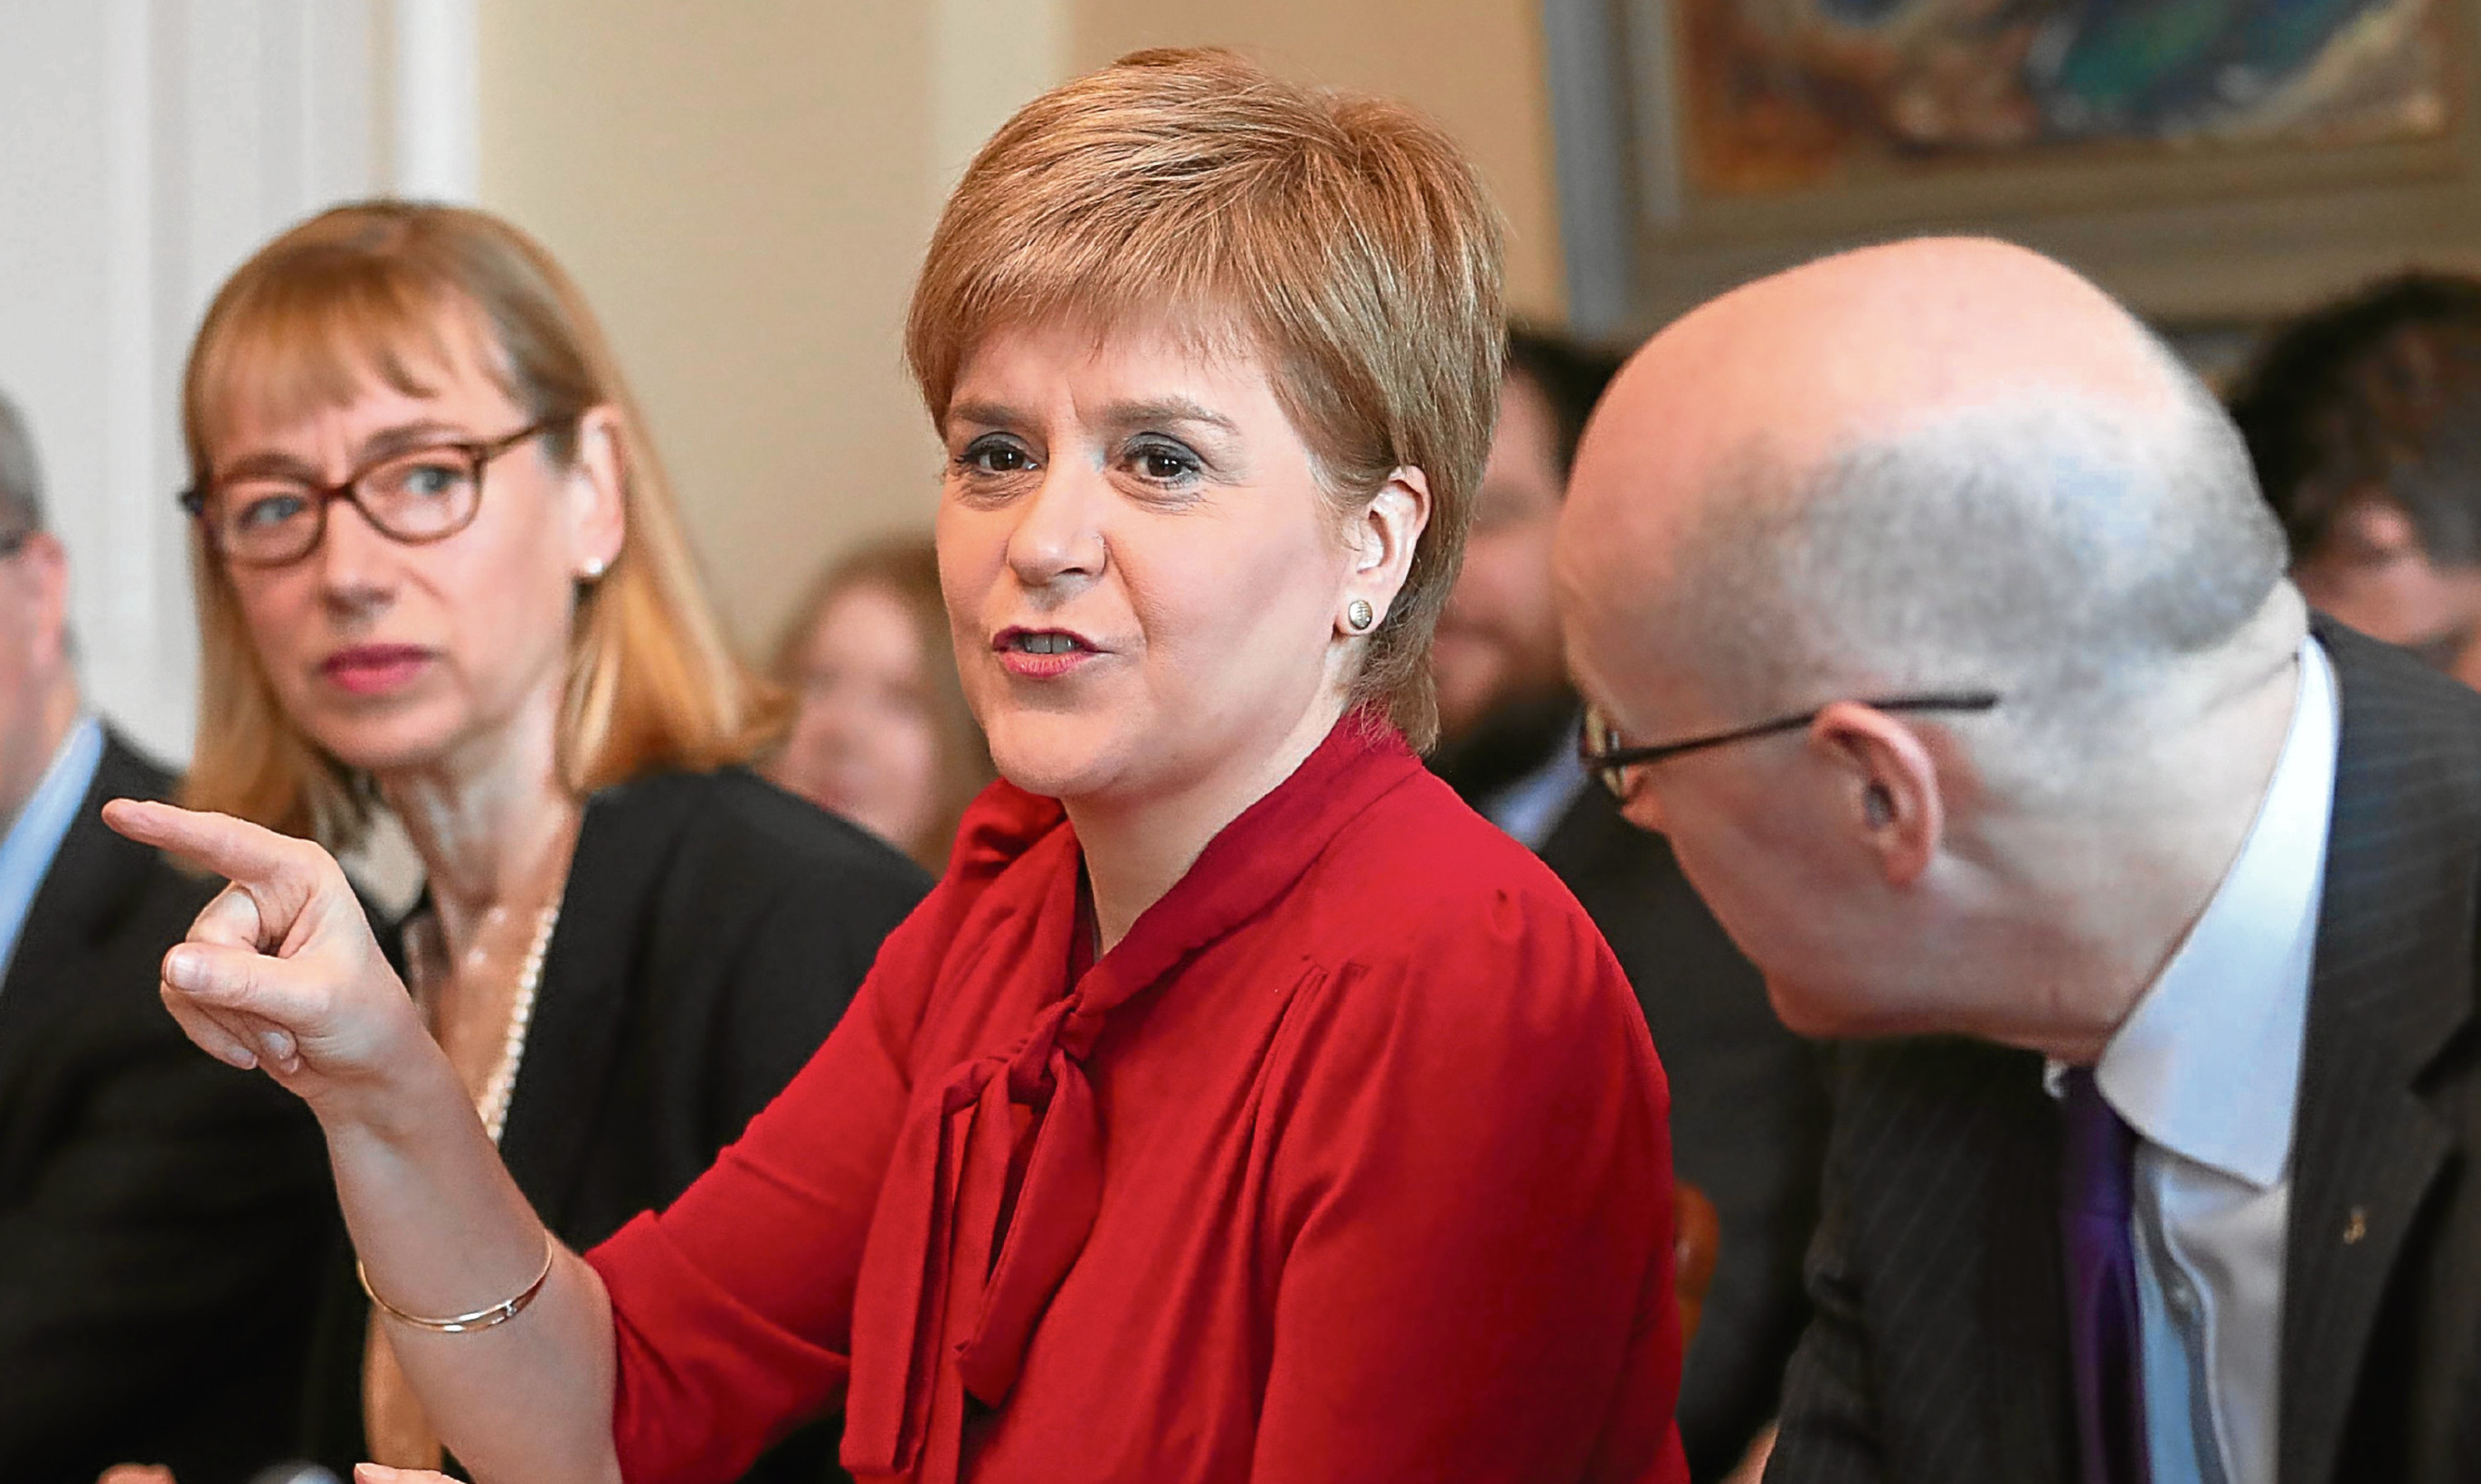 A pointer in the wrong direction? Jenny feels Nicola Sturgeon's referendum call could badly backfire.